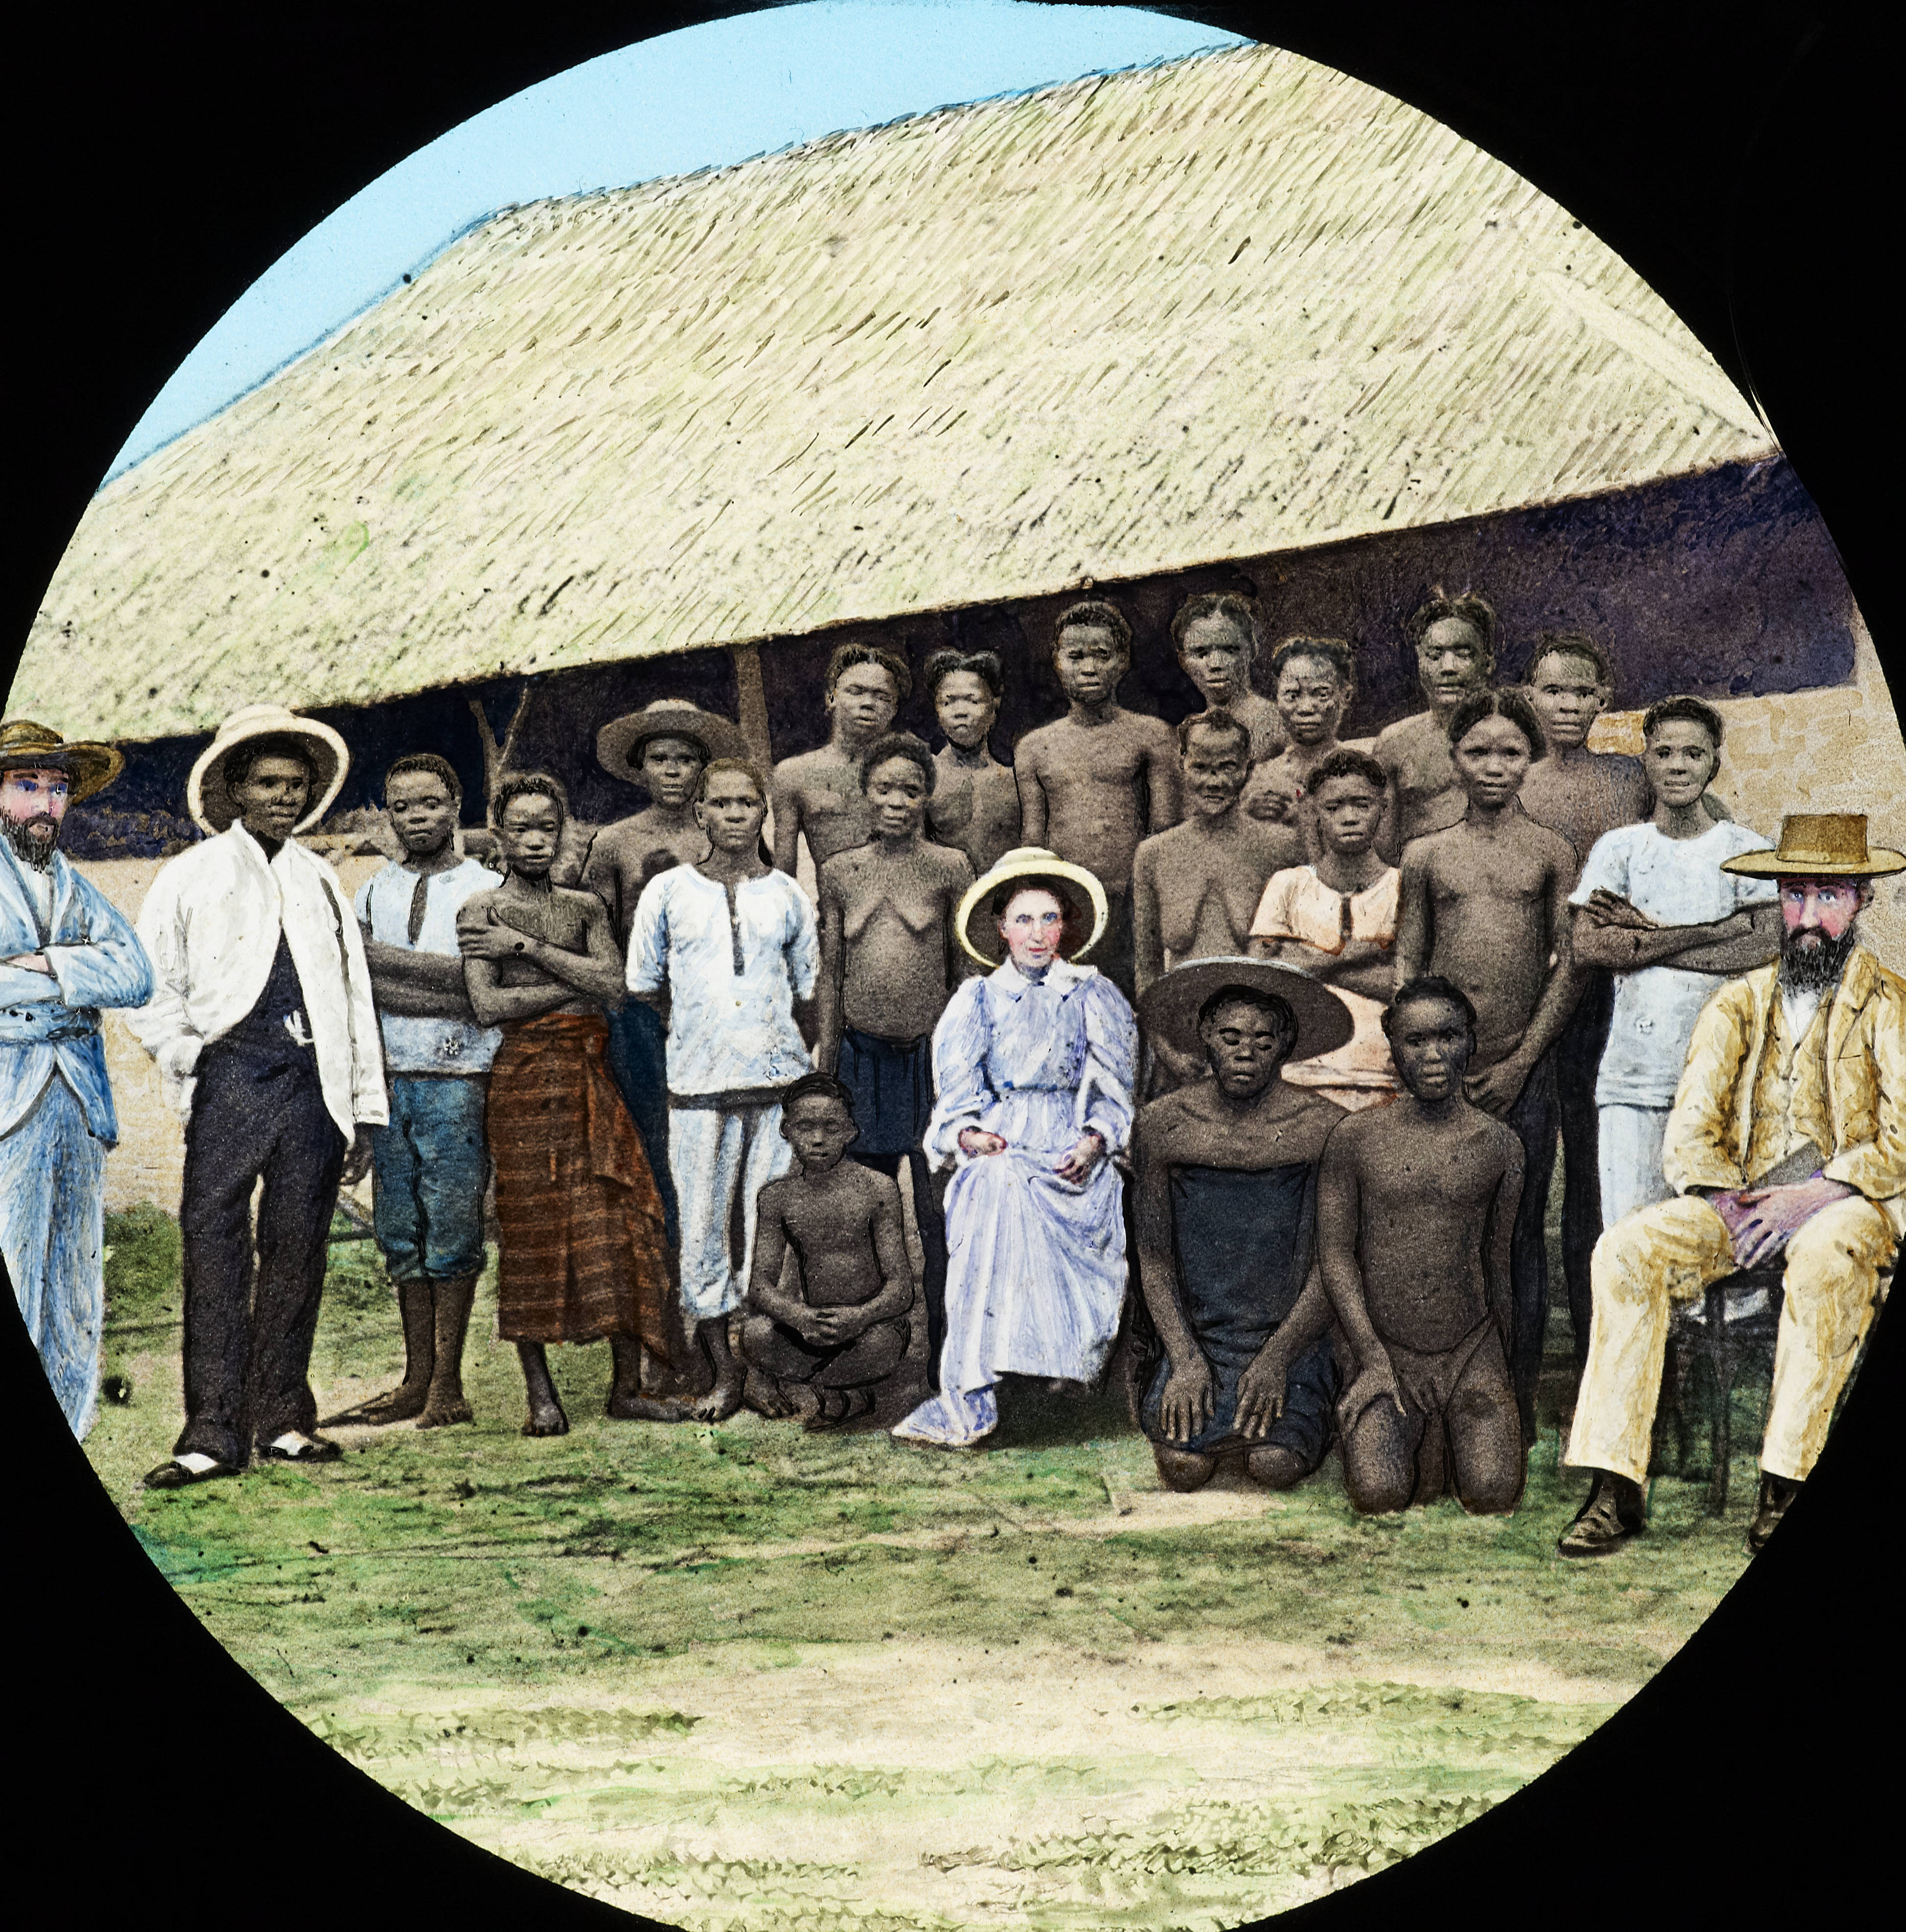 filemissionaries and congolese community congo ca 1900